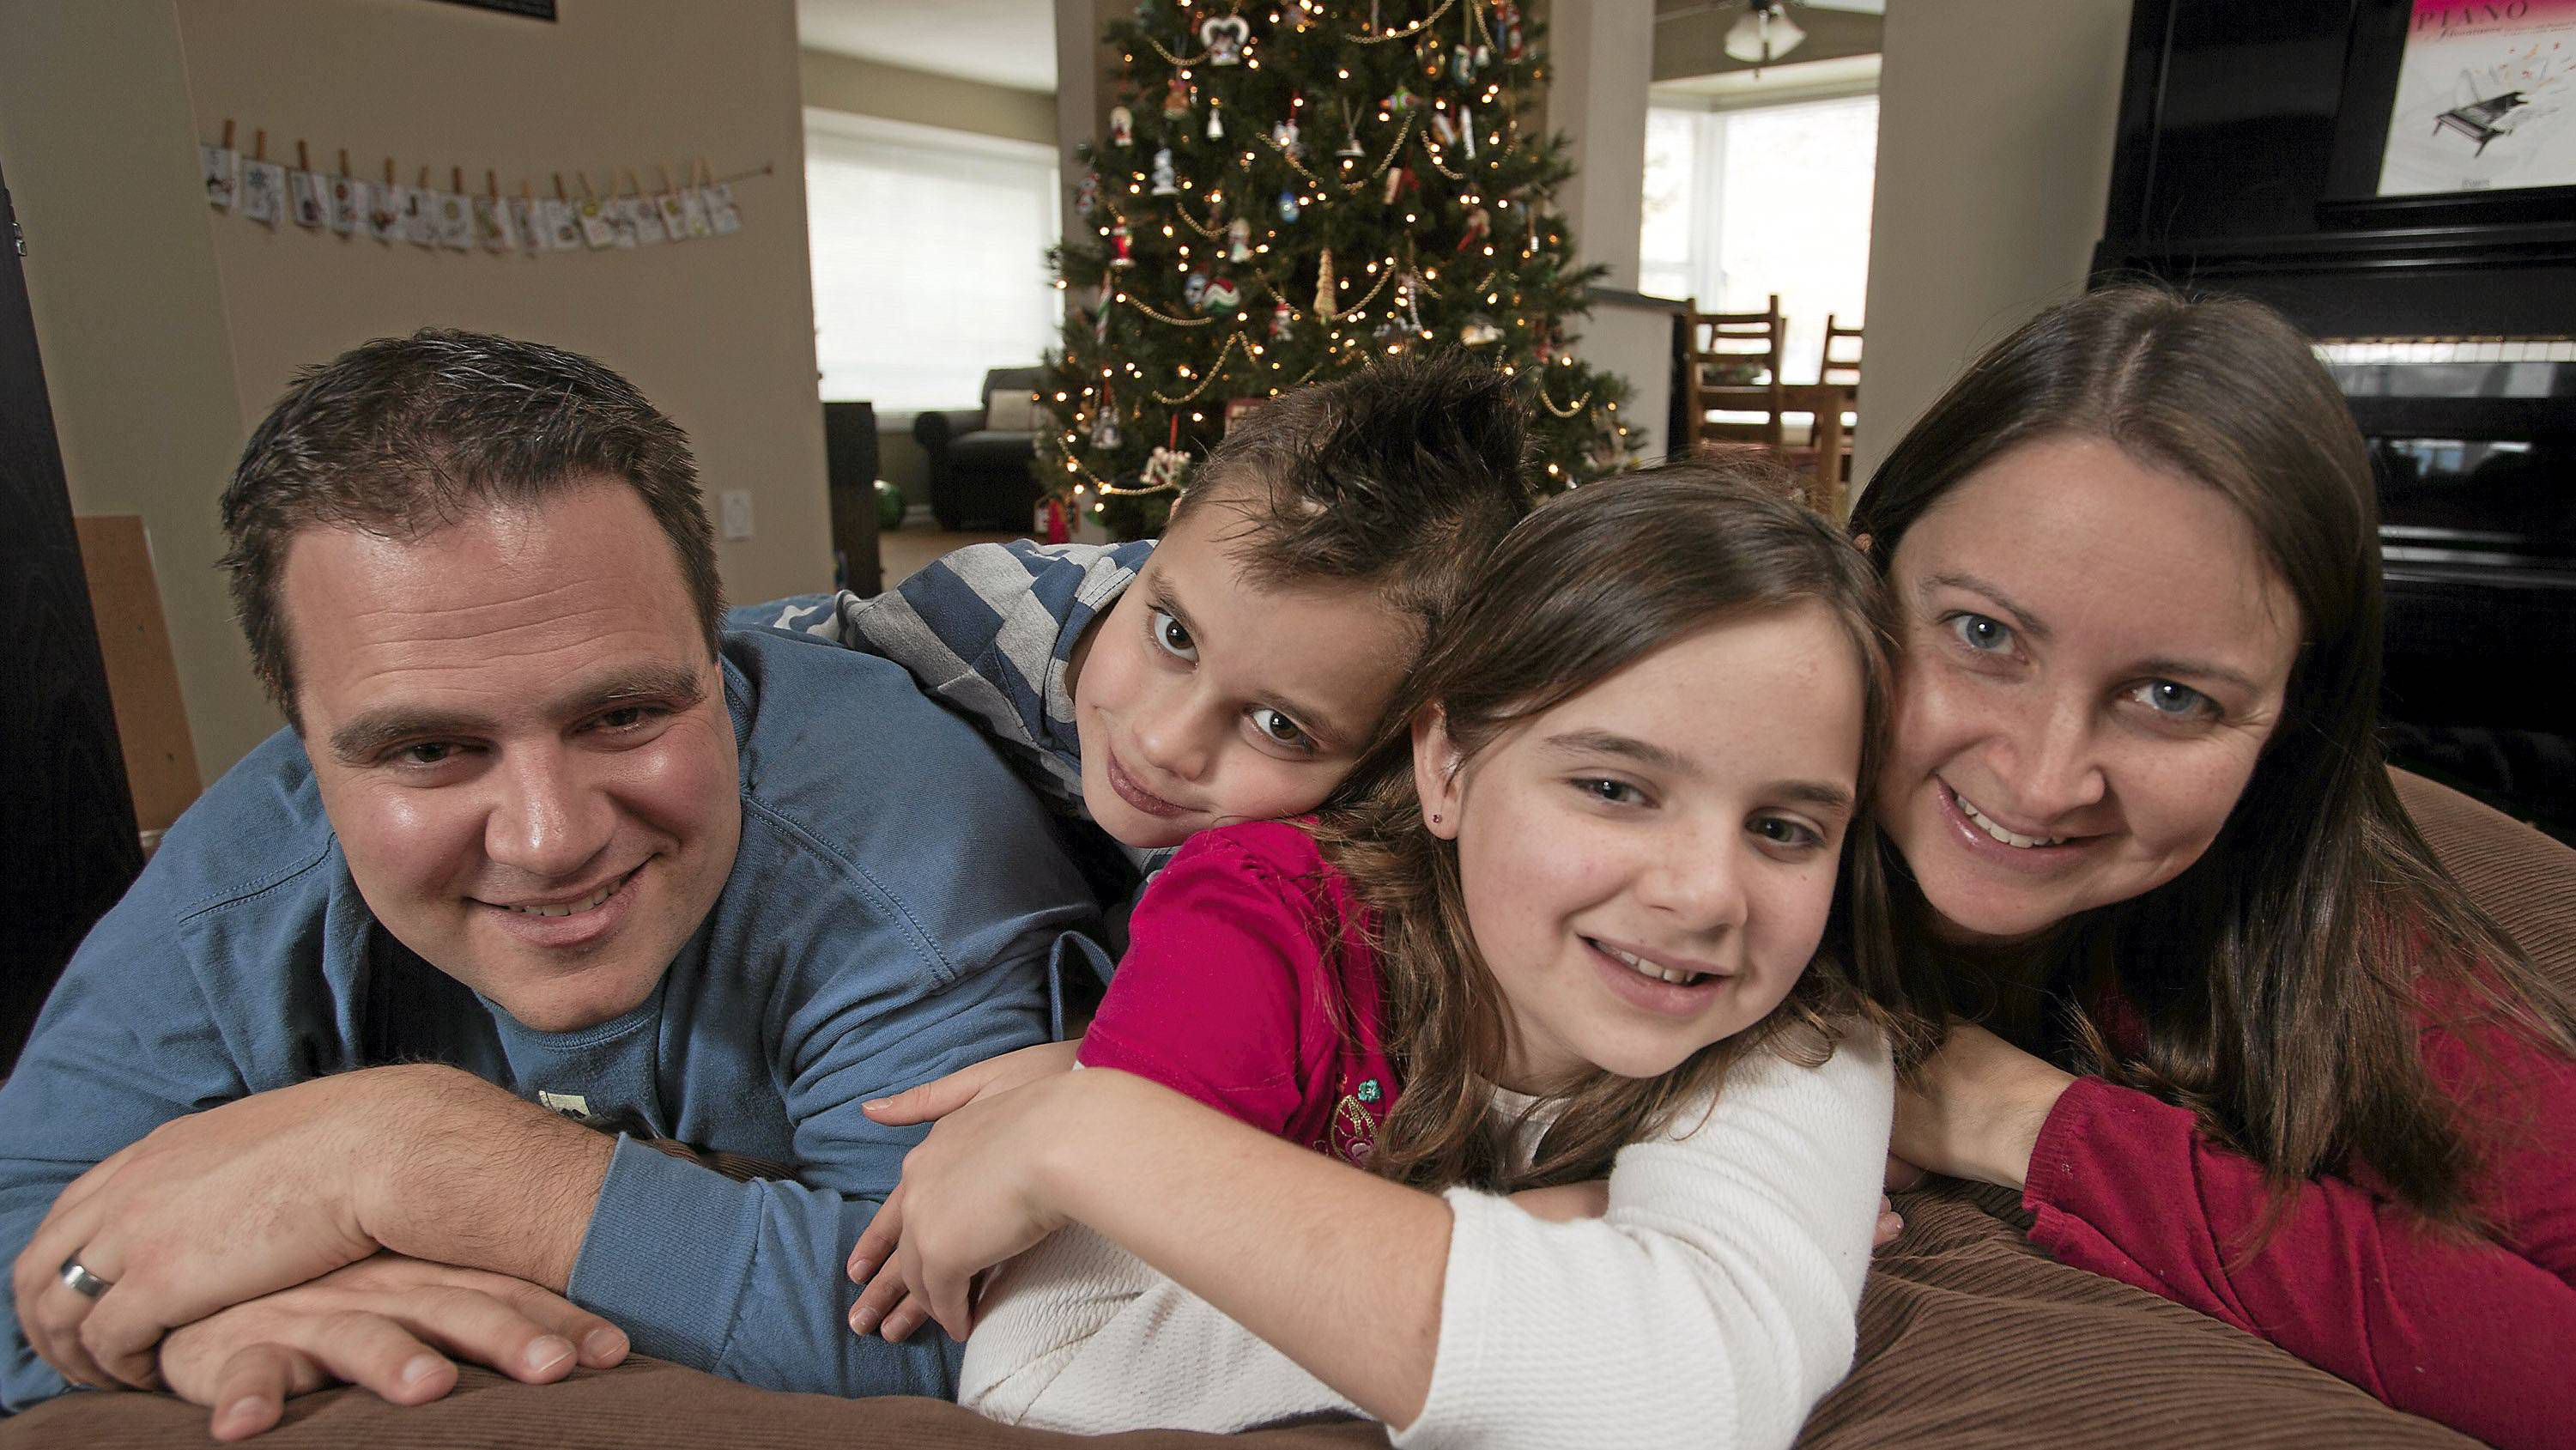 ab95590da2cb How to break with family holiday traditions - The Globe and Mail